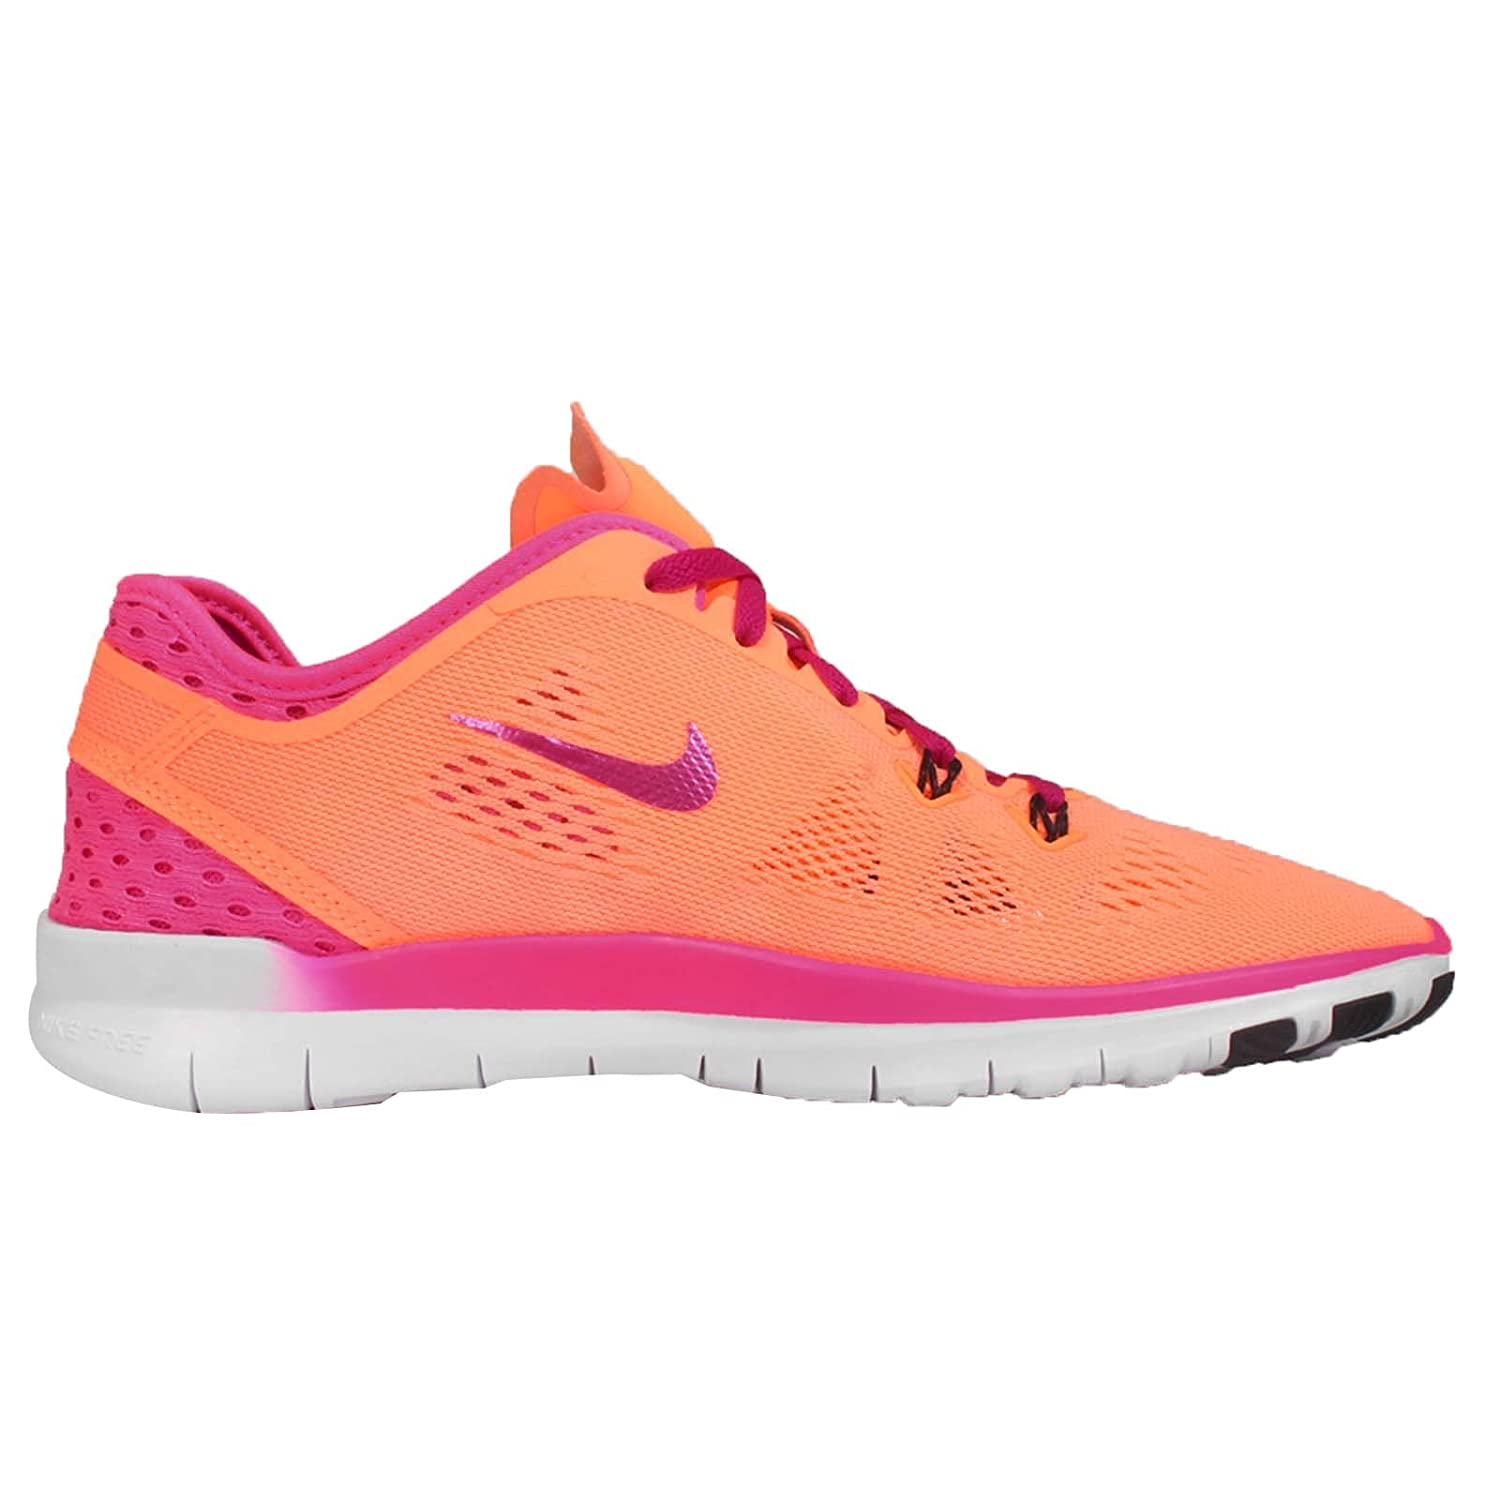 sneakers for cheap bff70 cff96 Amazon.com   Nike FREE 5.0 TR FIT BREATHE (Sunset Glow Pink) Women s  Running Shoes 5 Us   Athletic